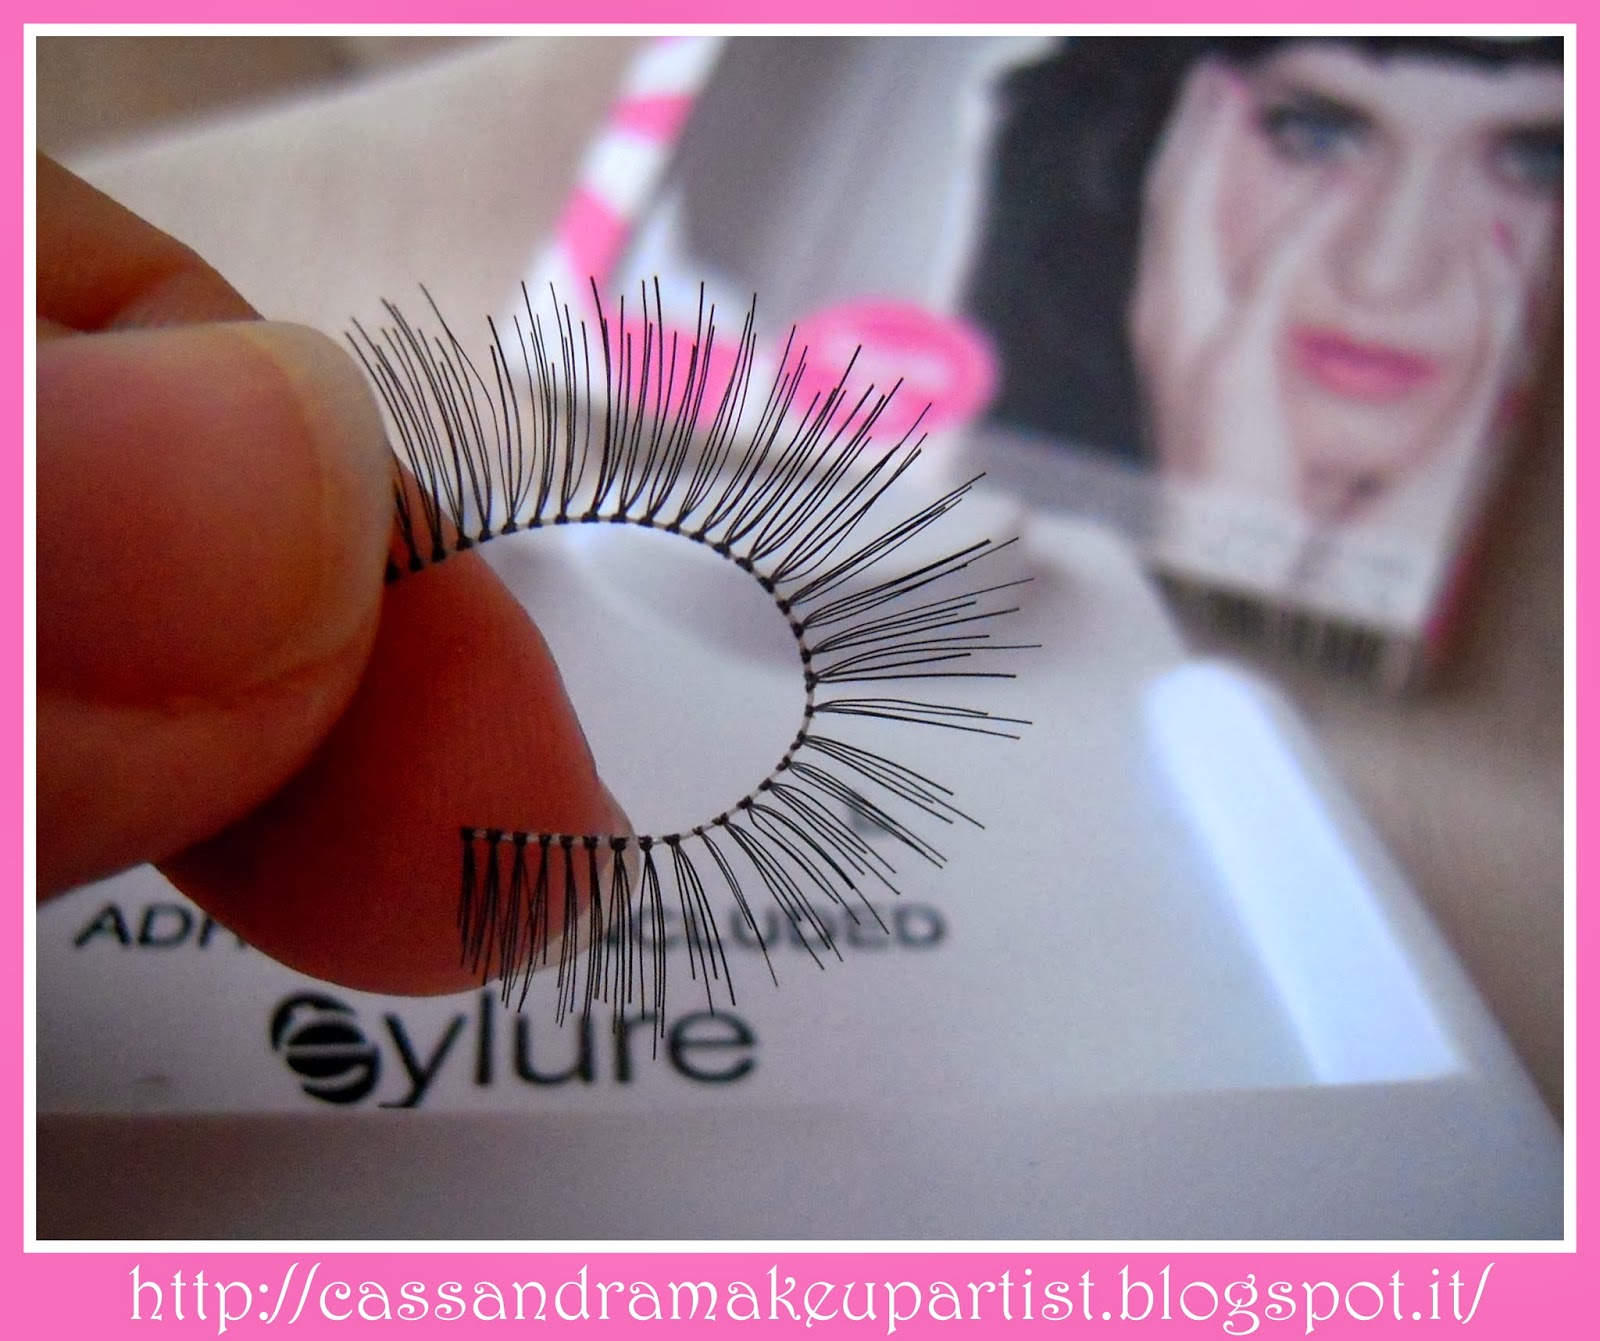 EYLURE - Katy Perry Lashes - SWEETIE PIE -false lashes - ciglia finte - colla - prezzo - price - recensione - review - nude - naturali - glue - ciglia a nastro - tutorial - lashes adhesive